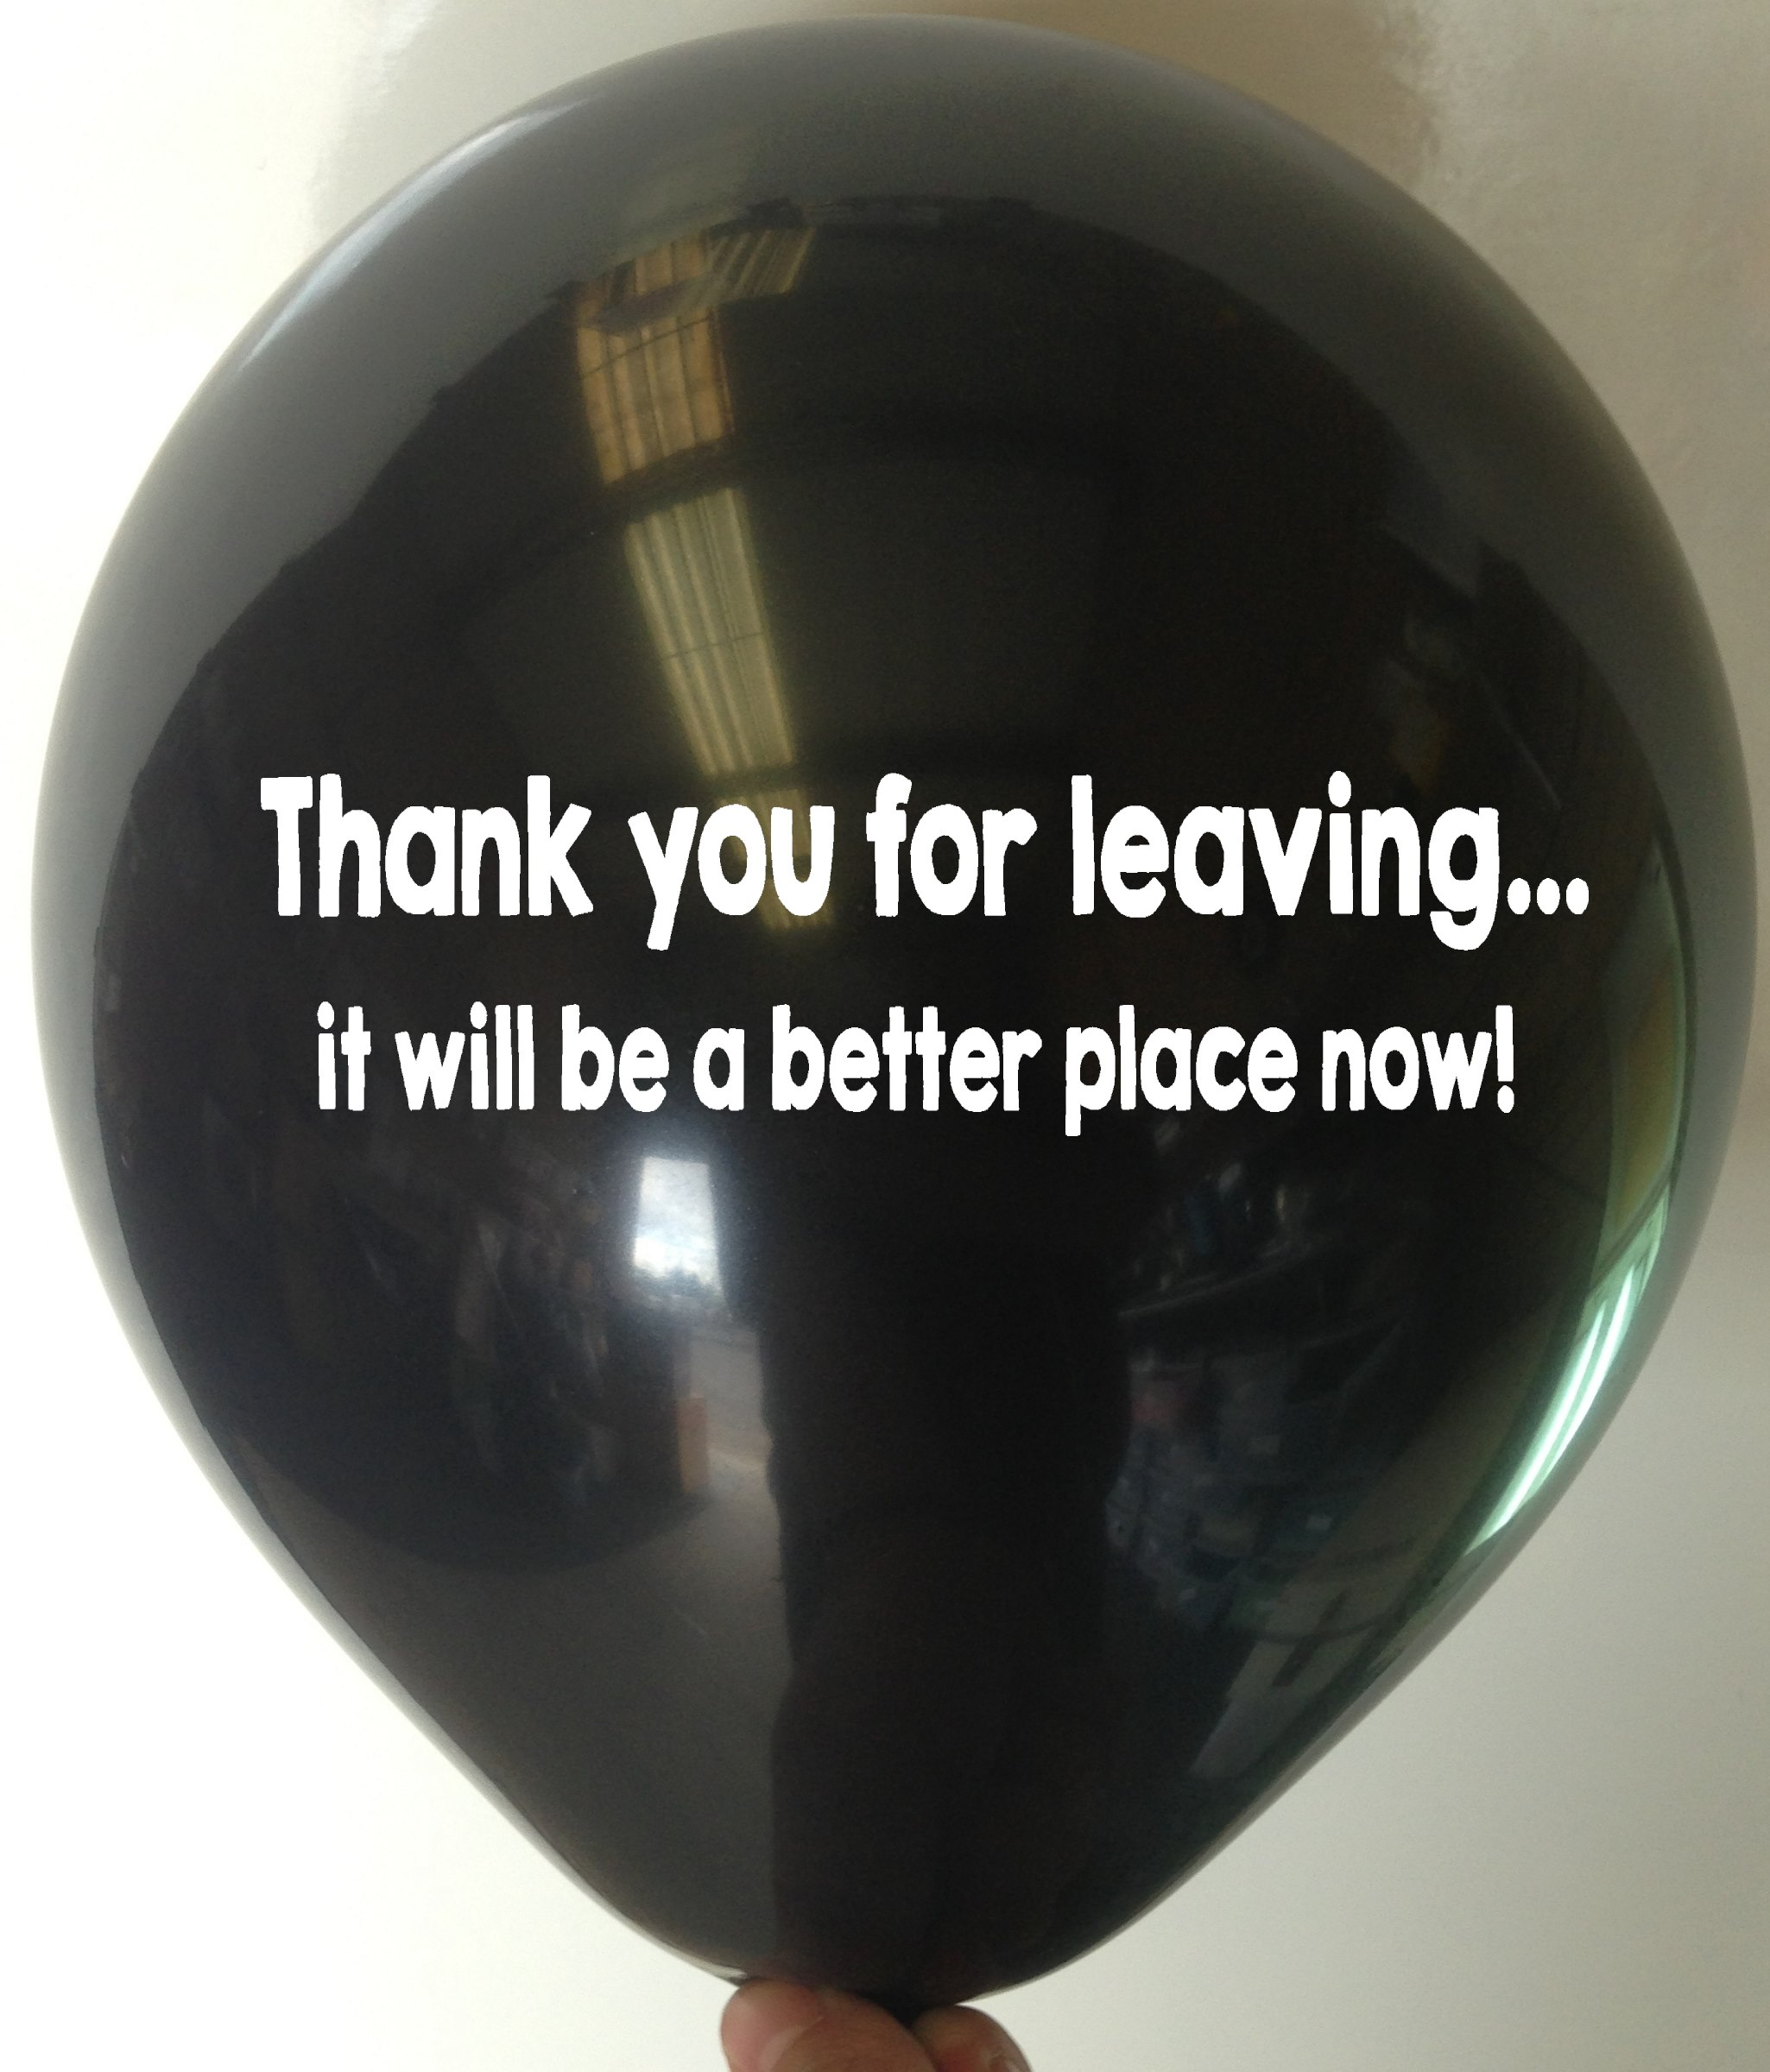 Rude Balloon Thank you for leaving, it will be a better place now